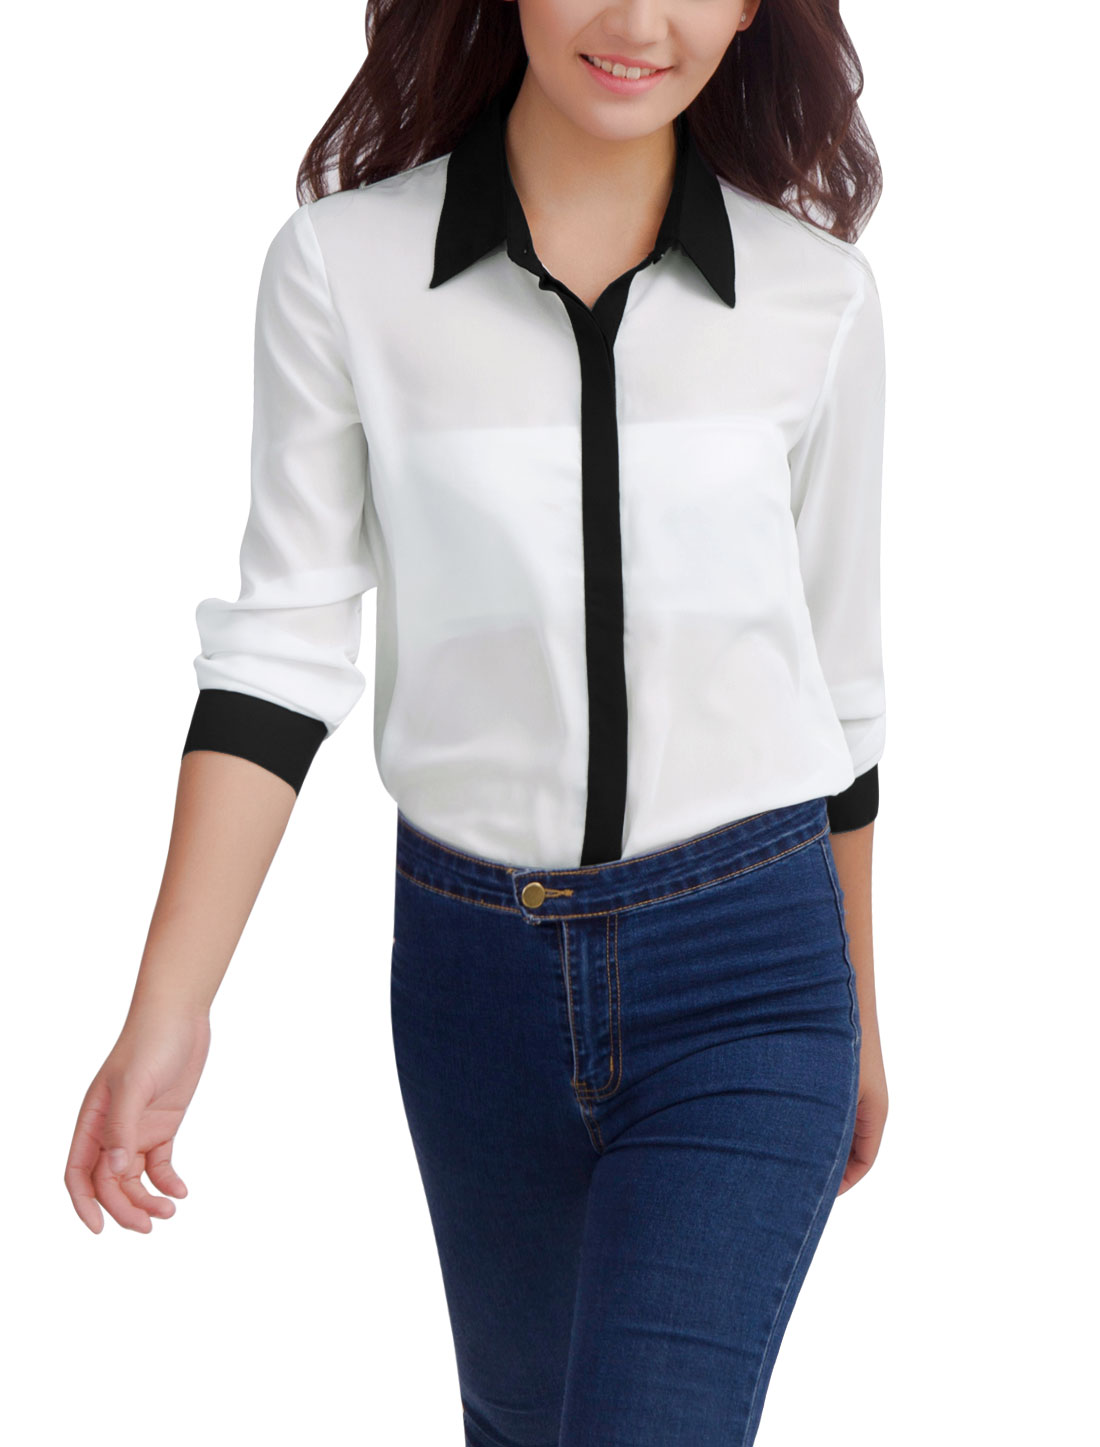 Ladies White Point Collar Buttoned Cuff Autumn Chiffon Blouse XS